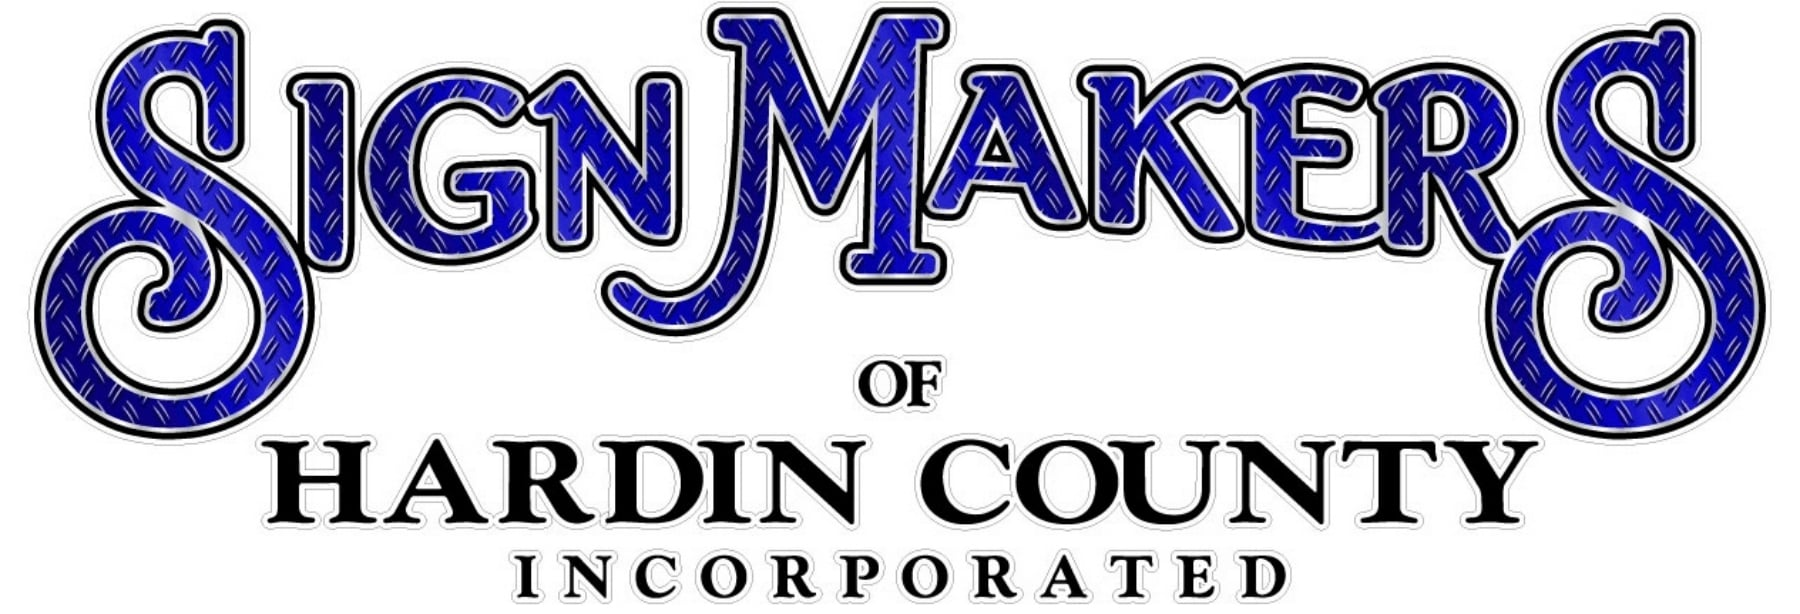 SignMakers of Hardin County Inc. logo